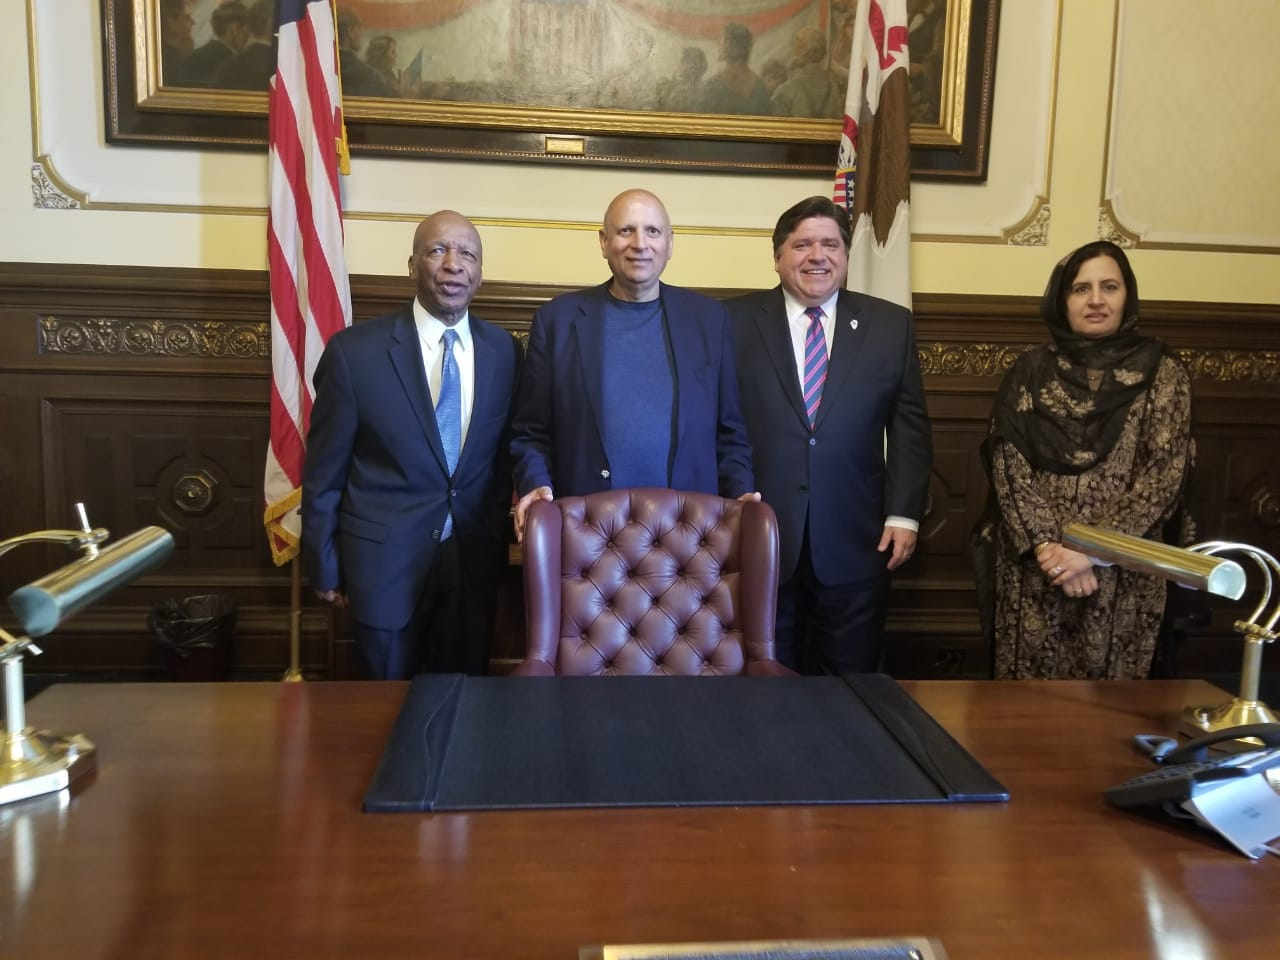 Jesse White Secretary Of State & Governor Mr J.B.Pritzker From State Of Illinois U.S.A